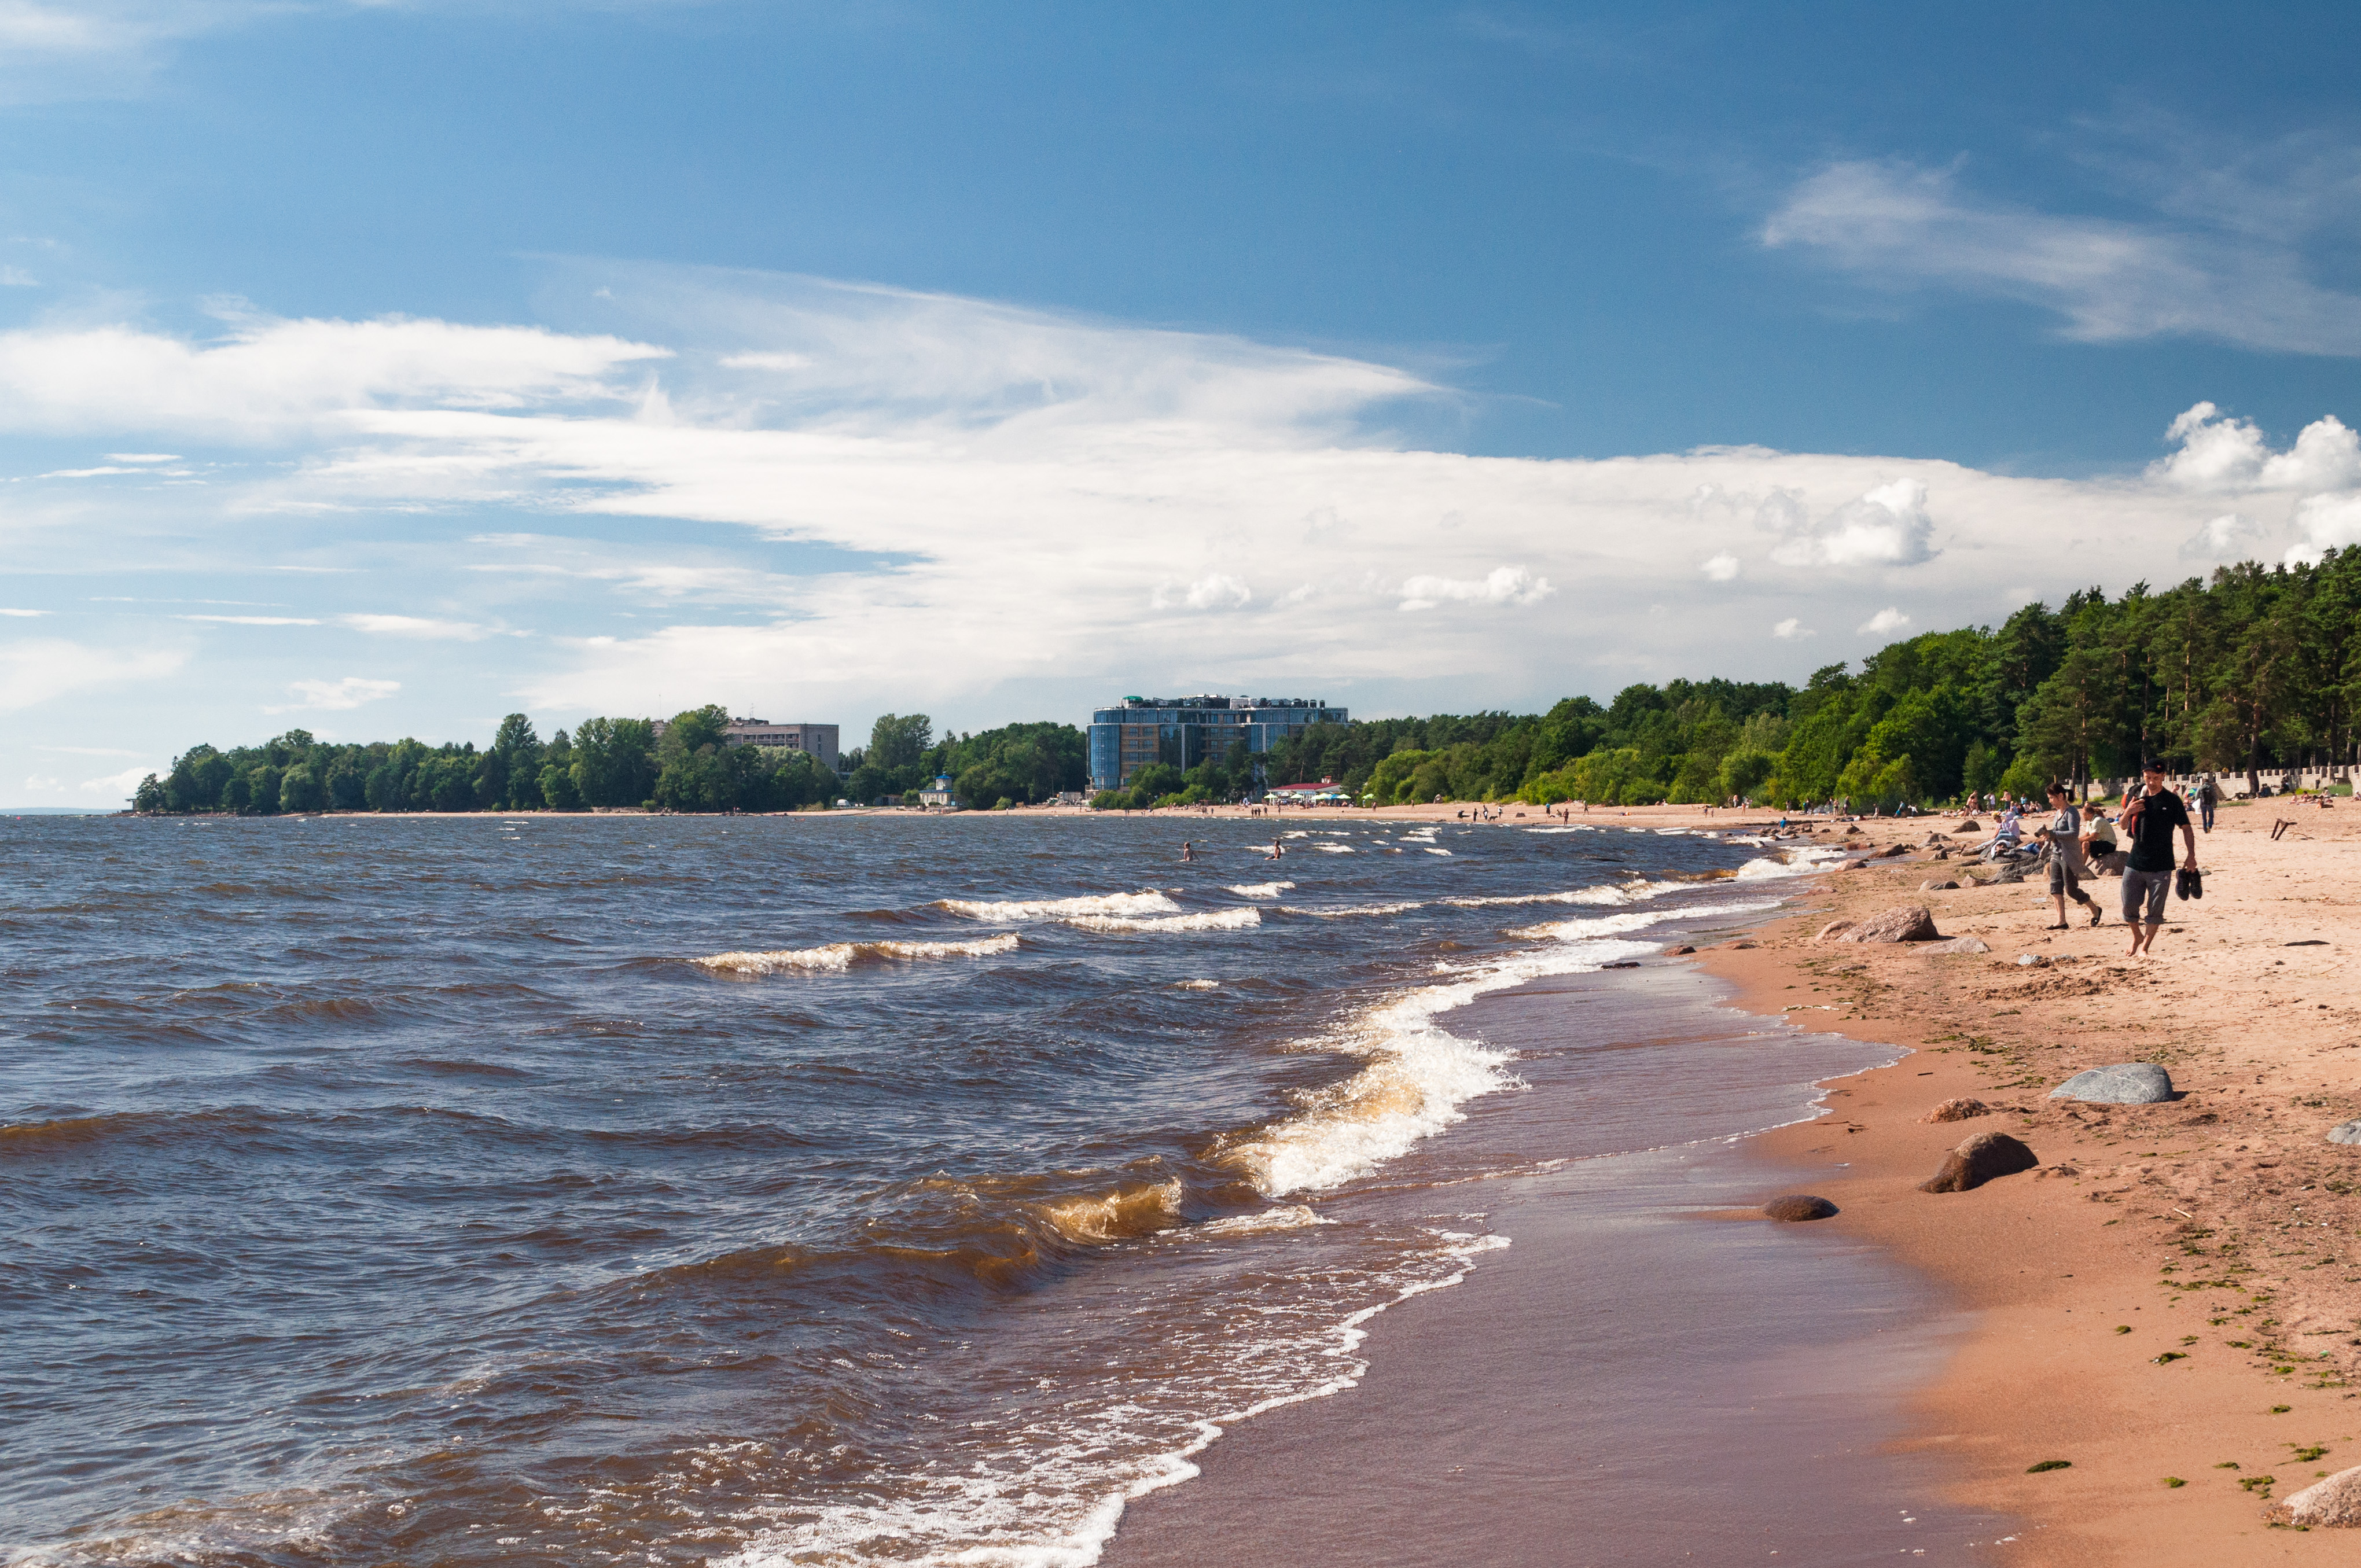 30 photos of the Gulf of Finland at different times of the year. Seascapes near Petersburg